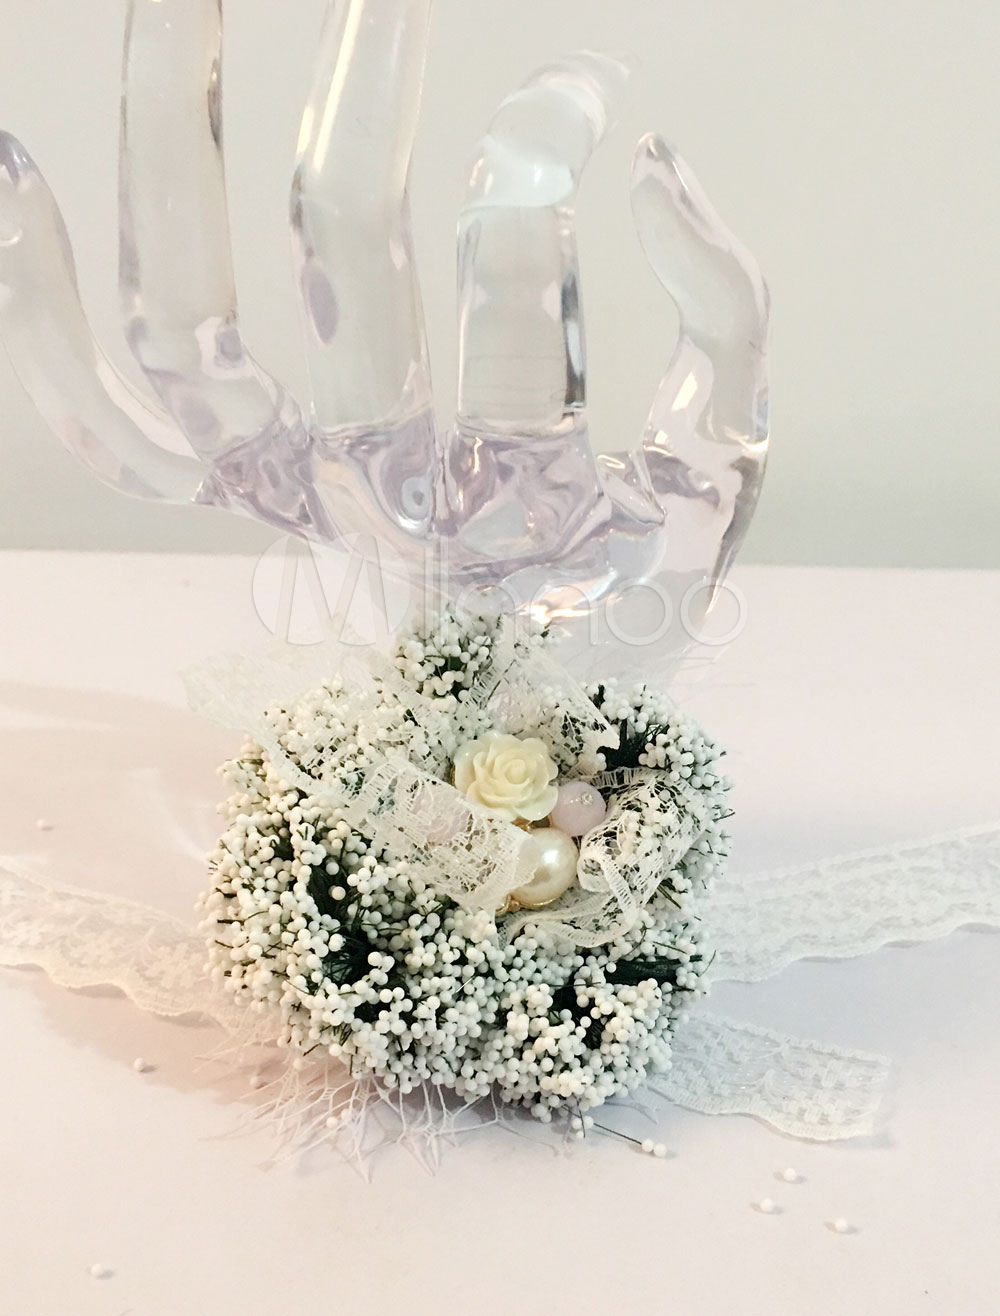 Buy Wrist Corsage Bracelet Wedding Pearls Beaded Bridesmaid White Lace Ribbon Prom Flower Corsage for $3.79 in Milanoo store